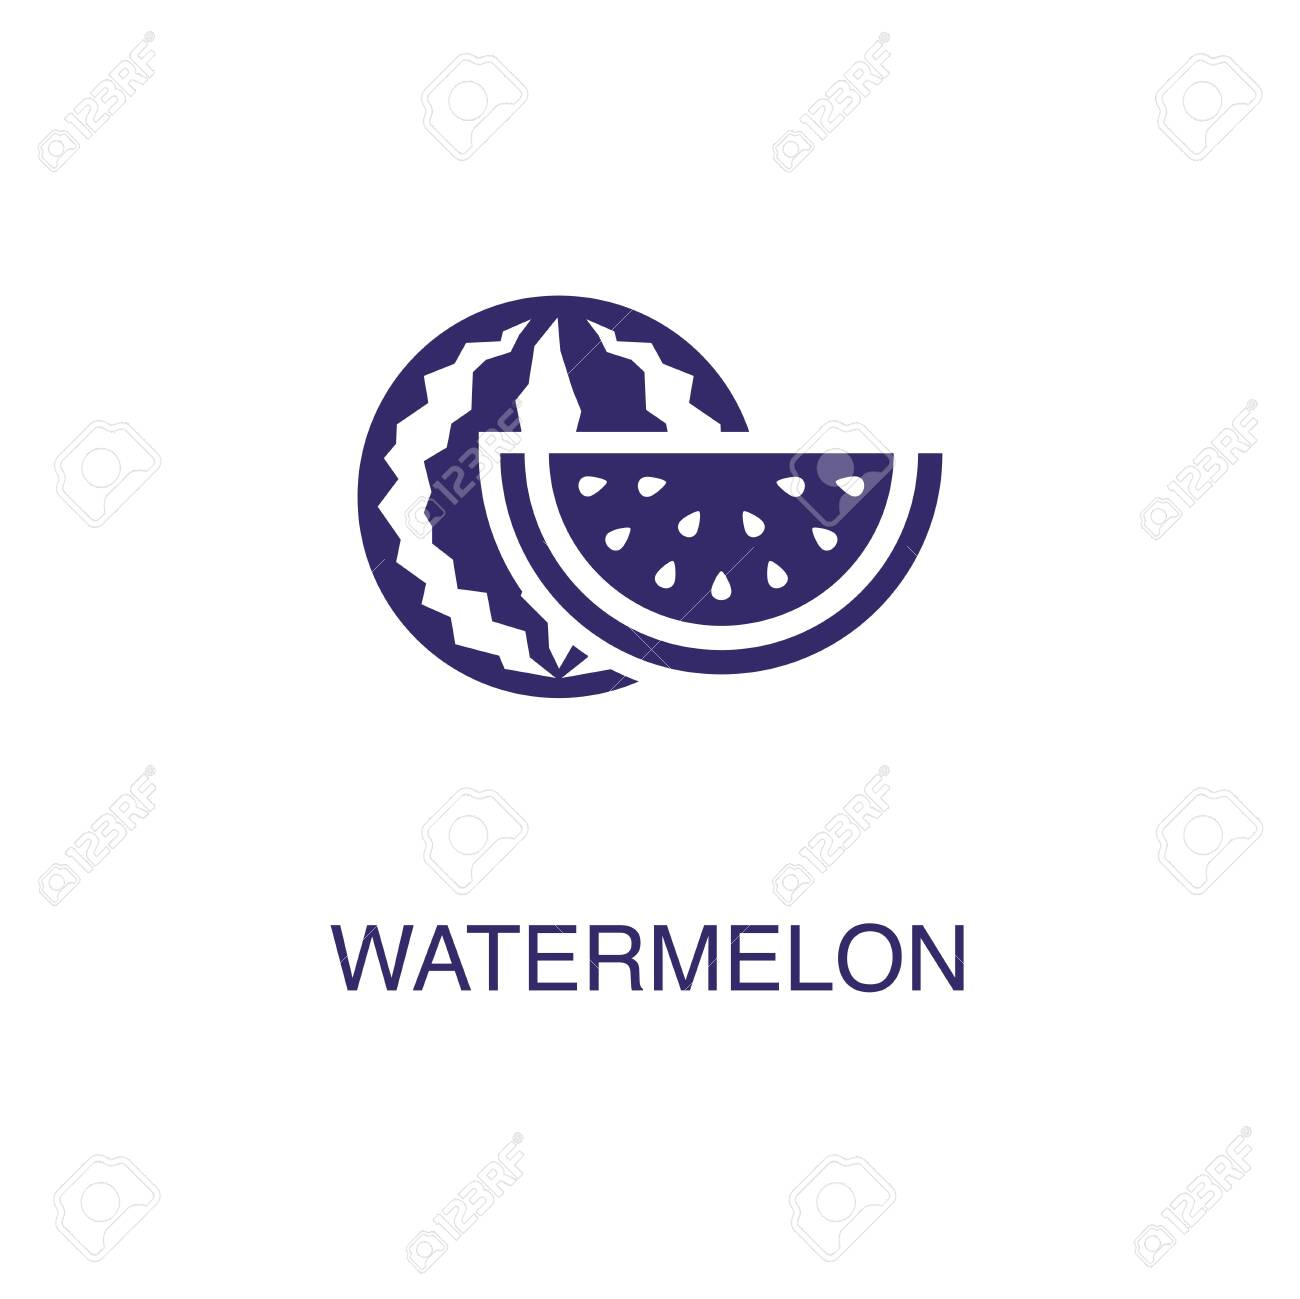 Watermelon element in flat simple style on white background. Watermelon icon, with text name concept template - 134450690